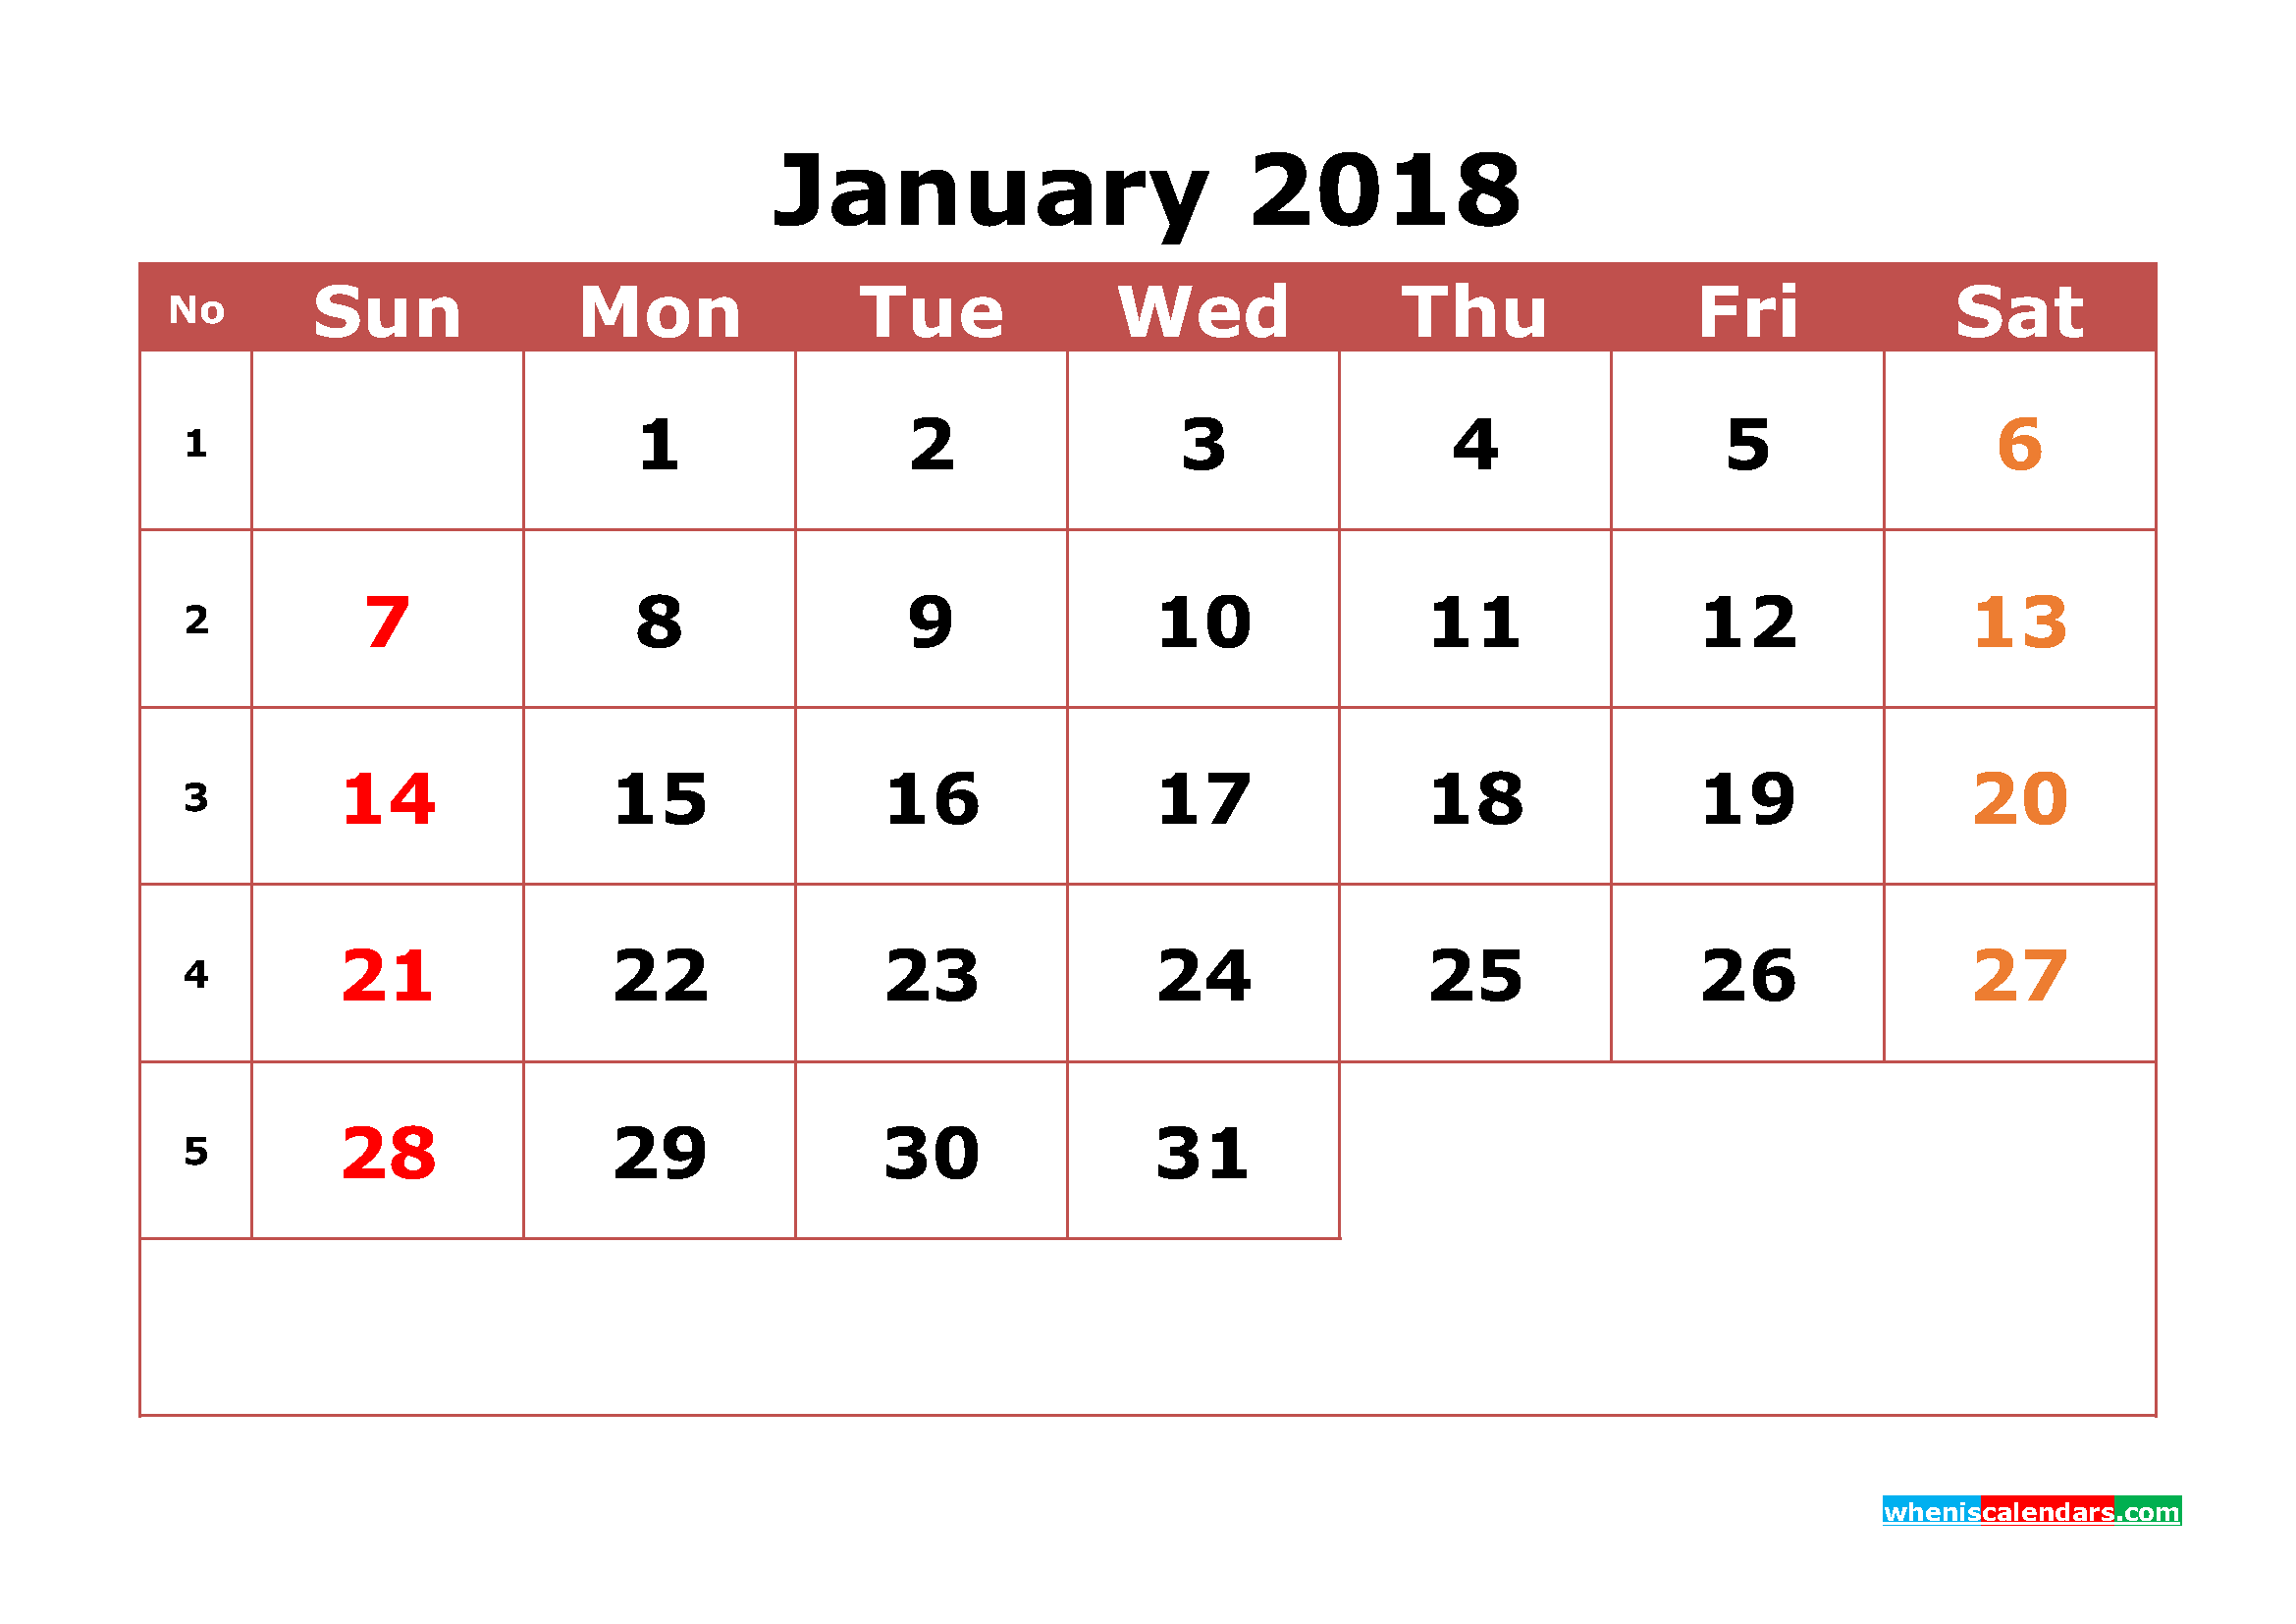 january 2018 calendar printable with week numbers image